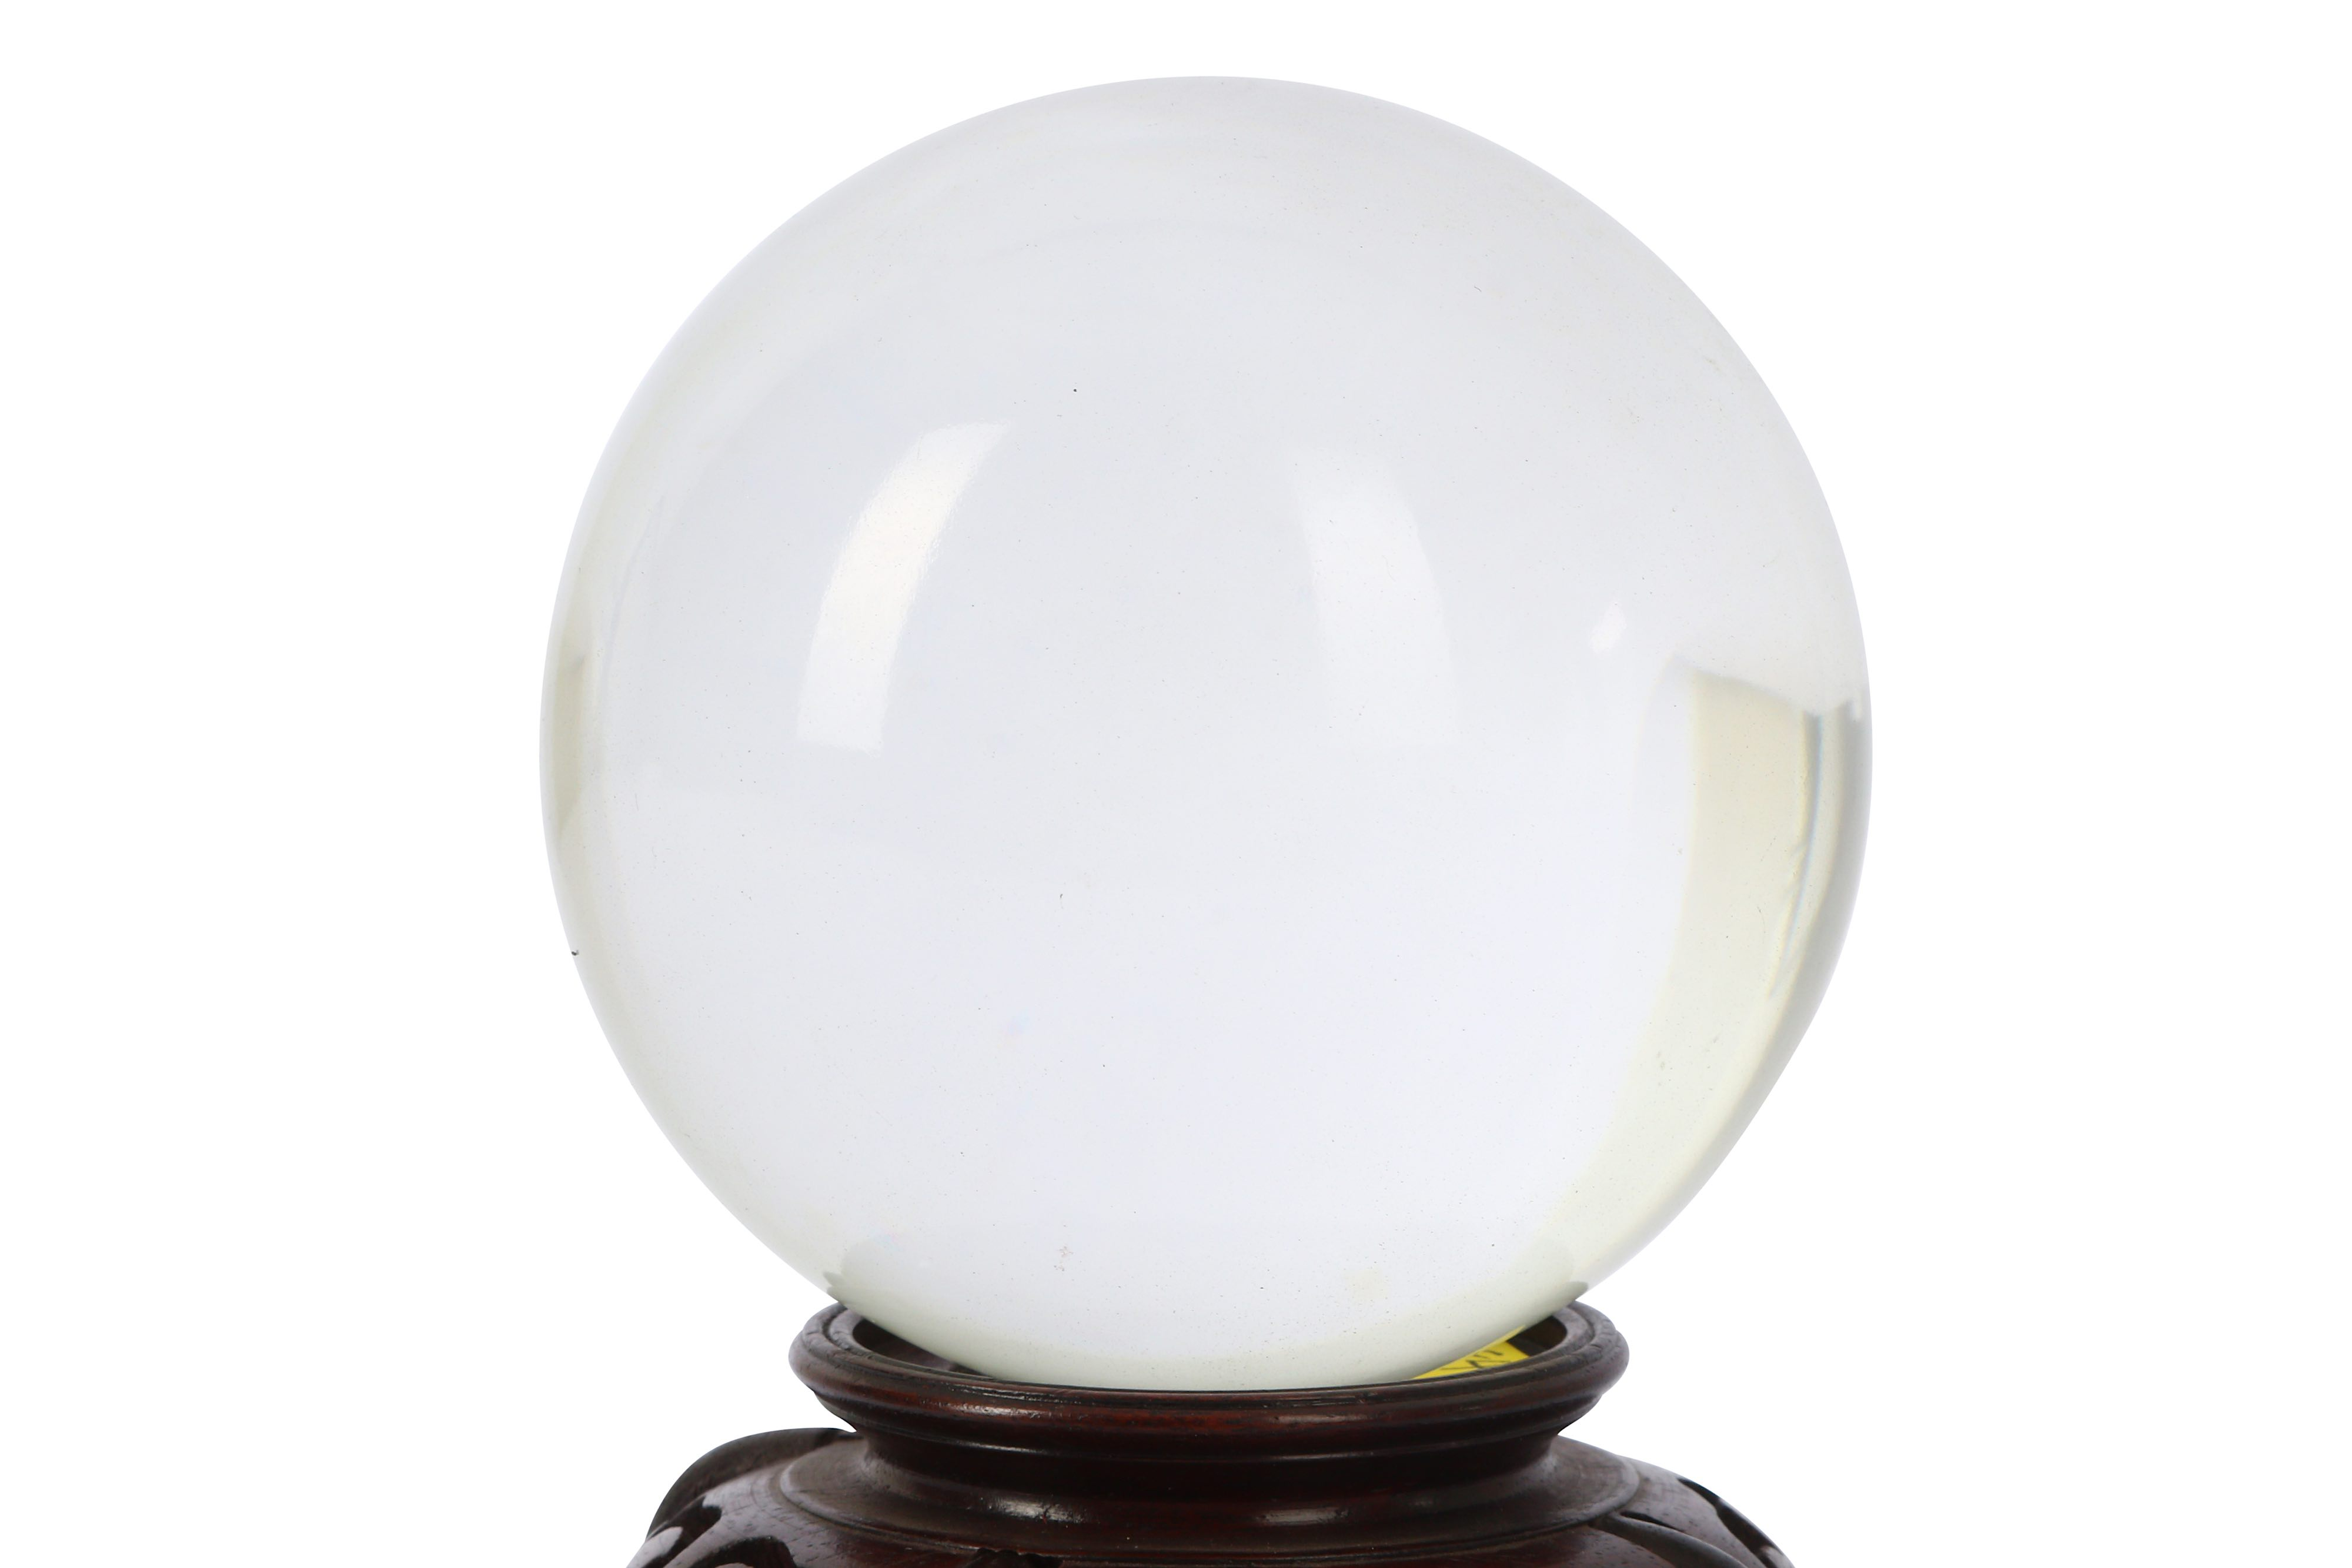 A LATE QING DYNASTY CHINESE CRYSTAL BALL. - Image 2 of 3